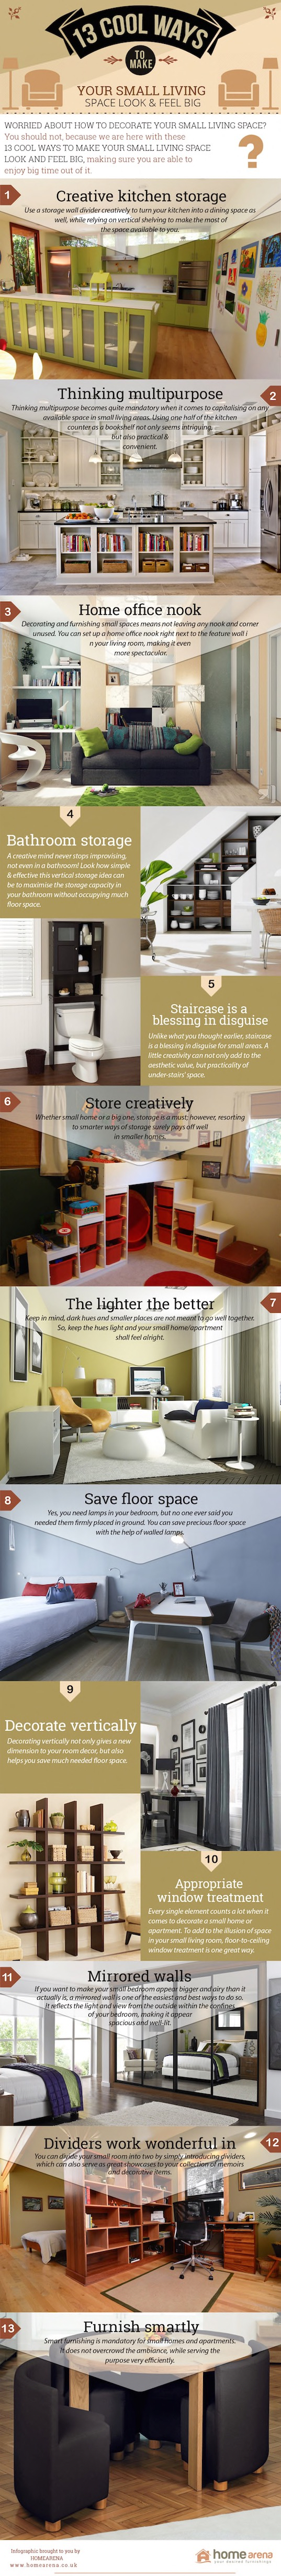 infographic, Home arena, space saving tips, space saving, small apartment, reader submitted content